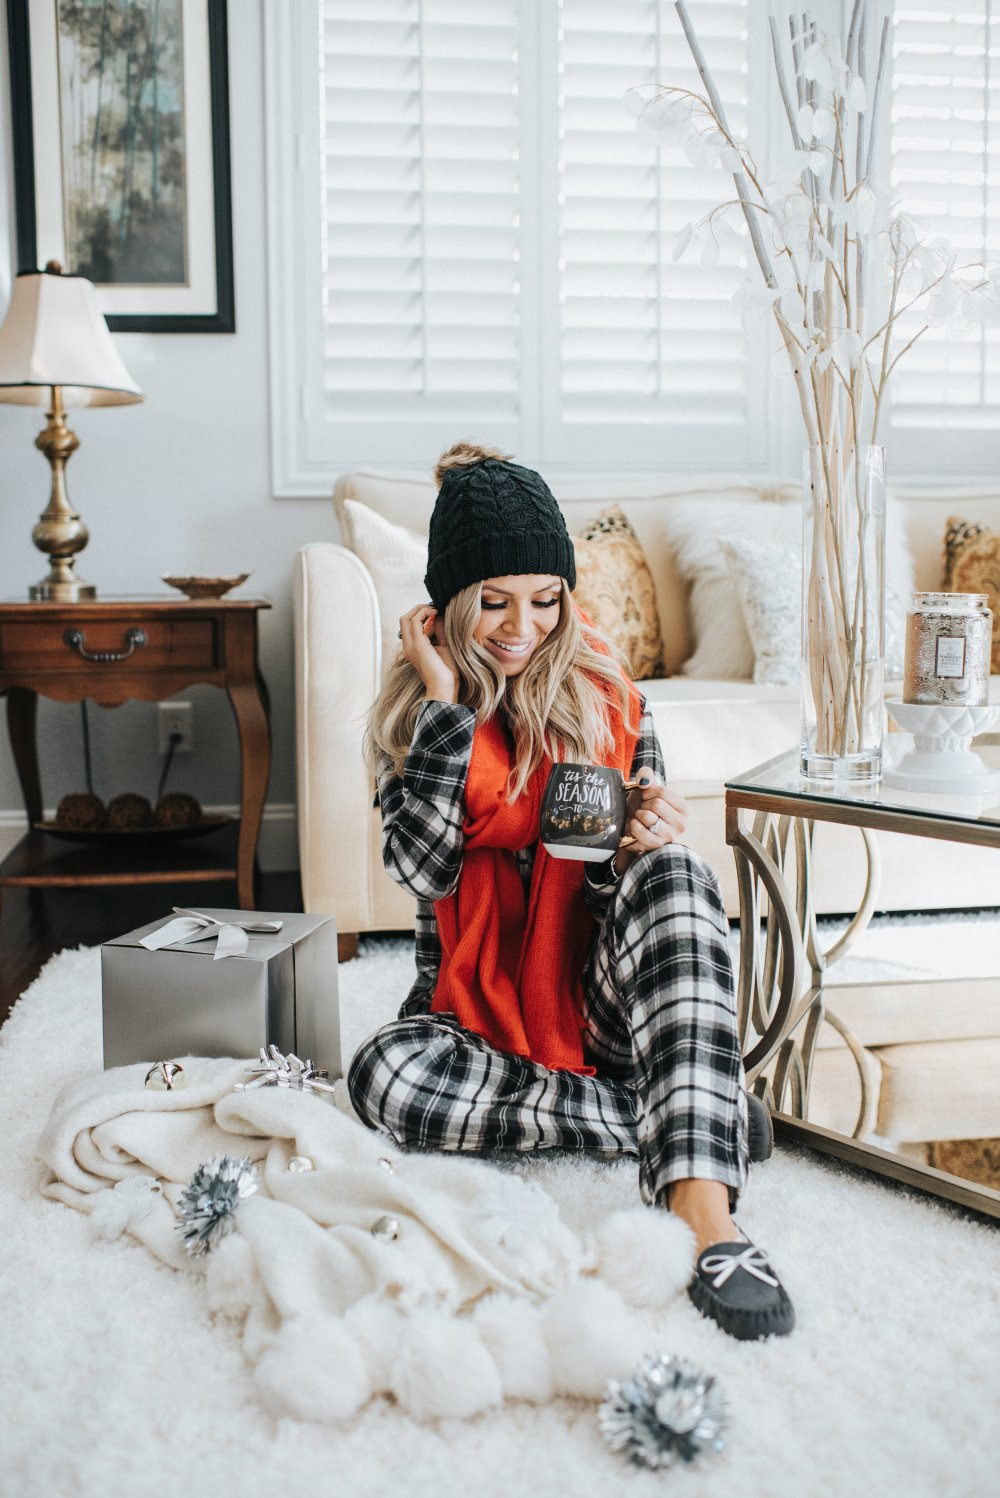 The best Christmas gift guide that is all about being comfy and cozy! From the softest PJs to the perfect holiday mug! These gifts are great for everyone!